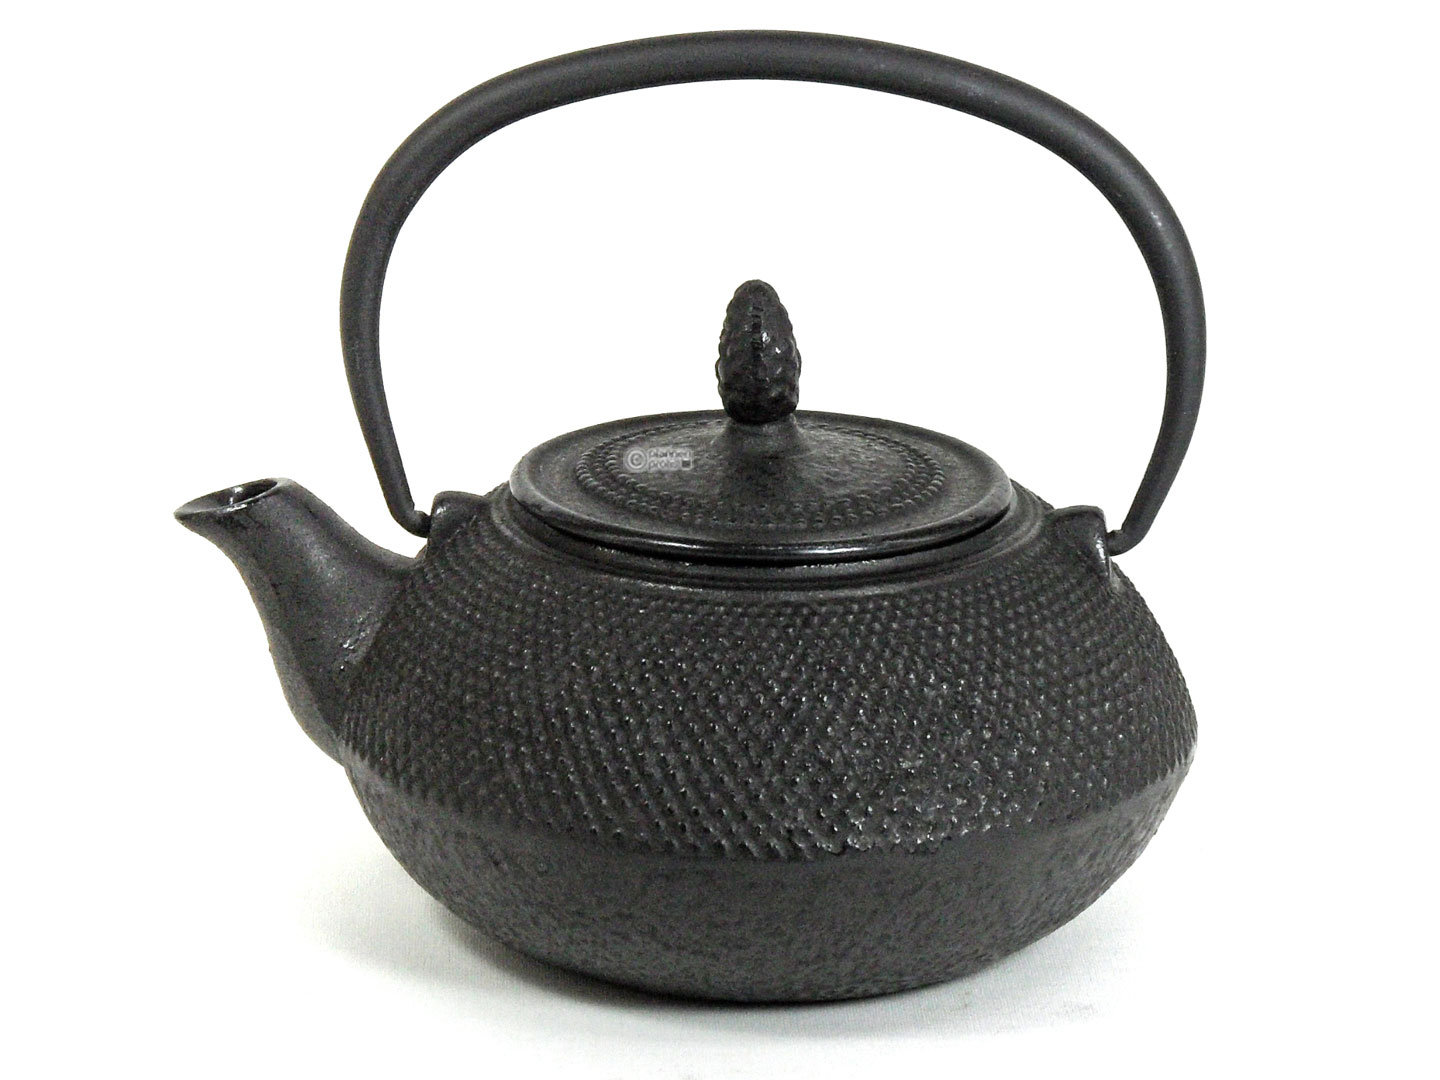 BEKA cast iron teapot MINI CEYLON 0,6 L with tea strainer